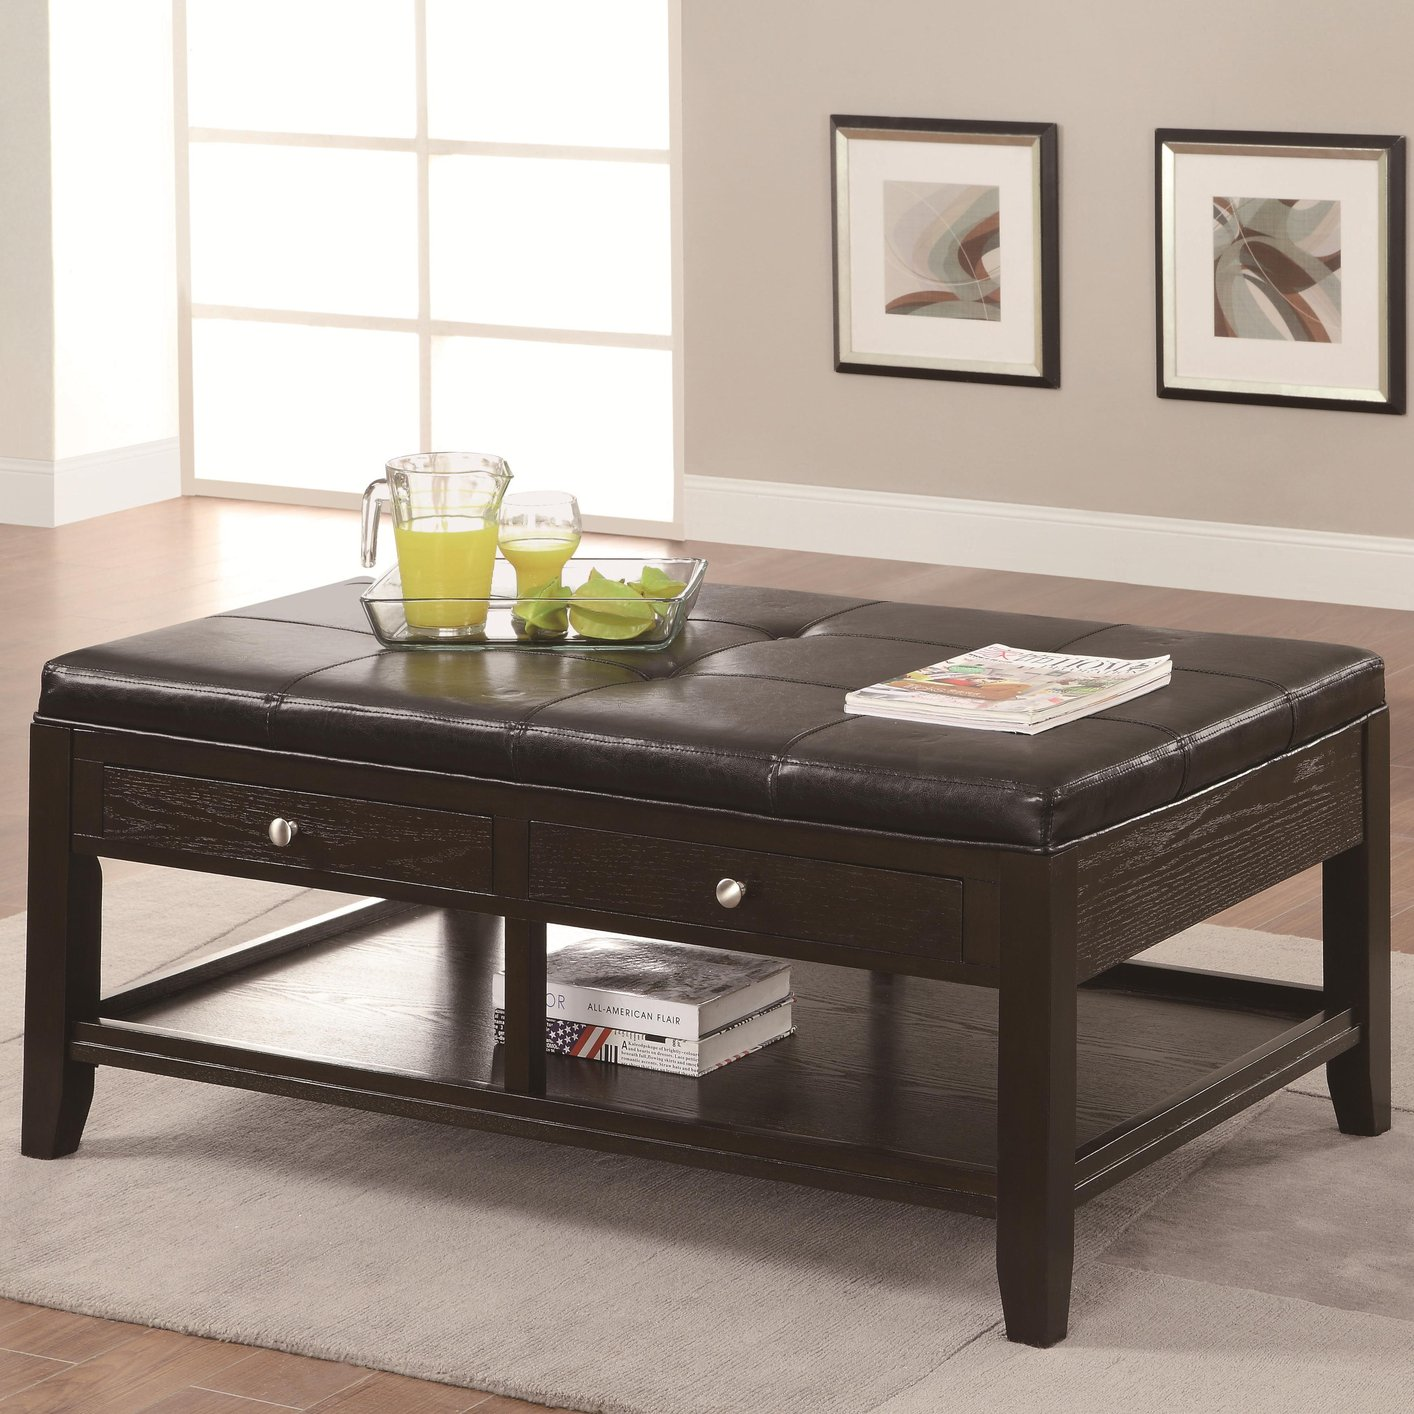 Brown Leather Coffee Table - Coaster 702498 Brown Leather Coffee Table - Steal-A-Sofa Furniture